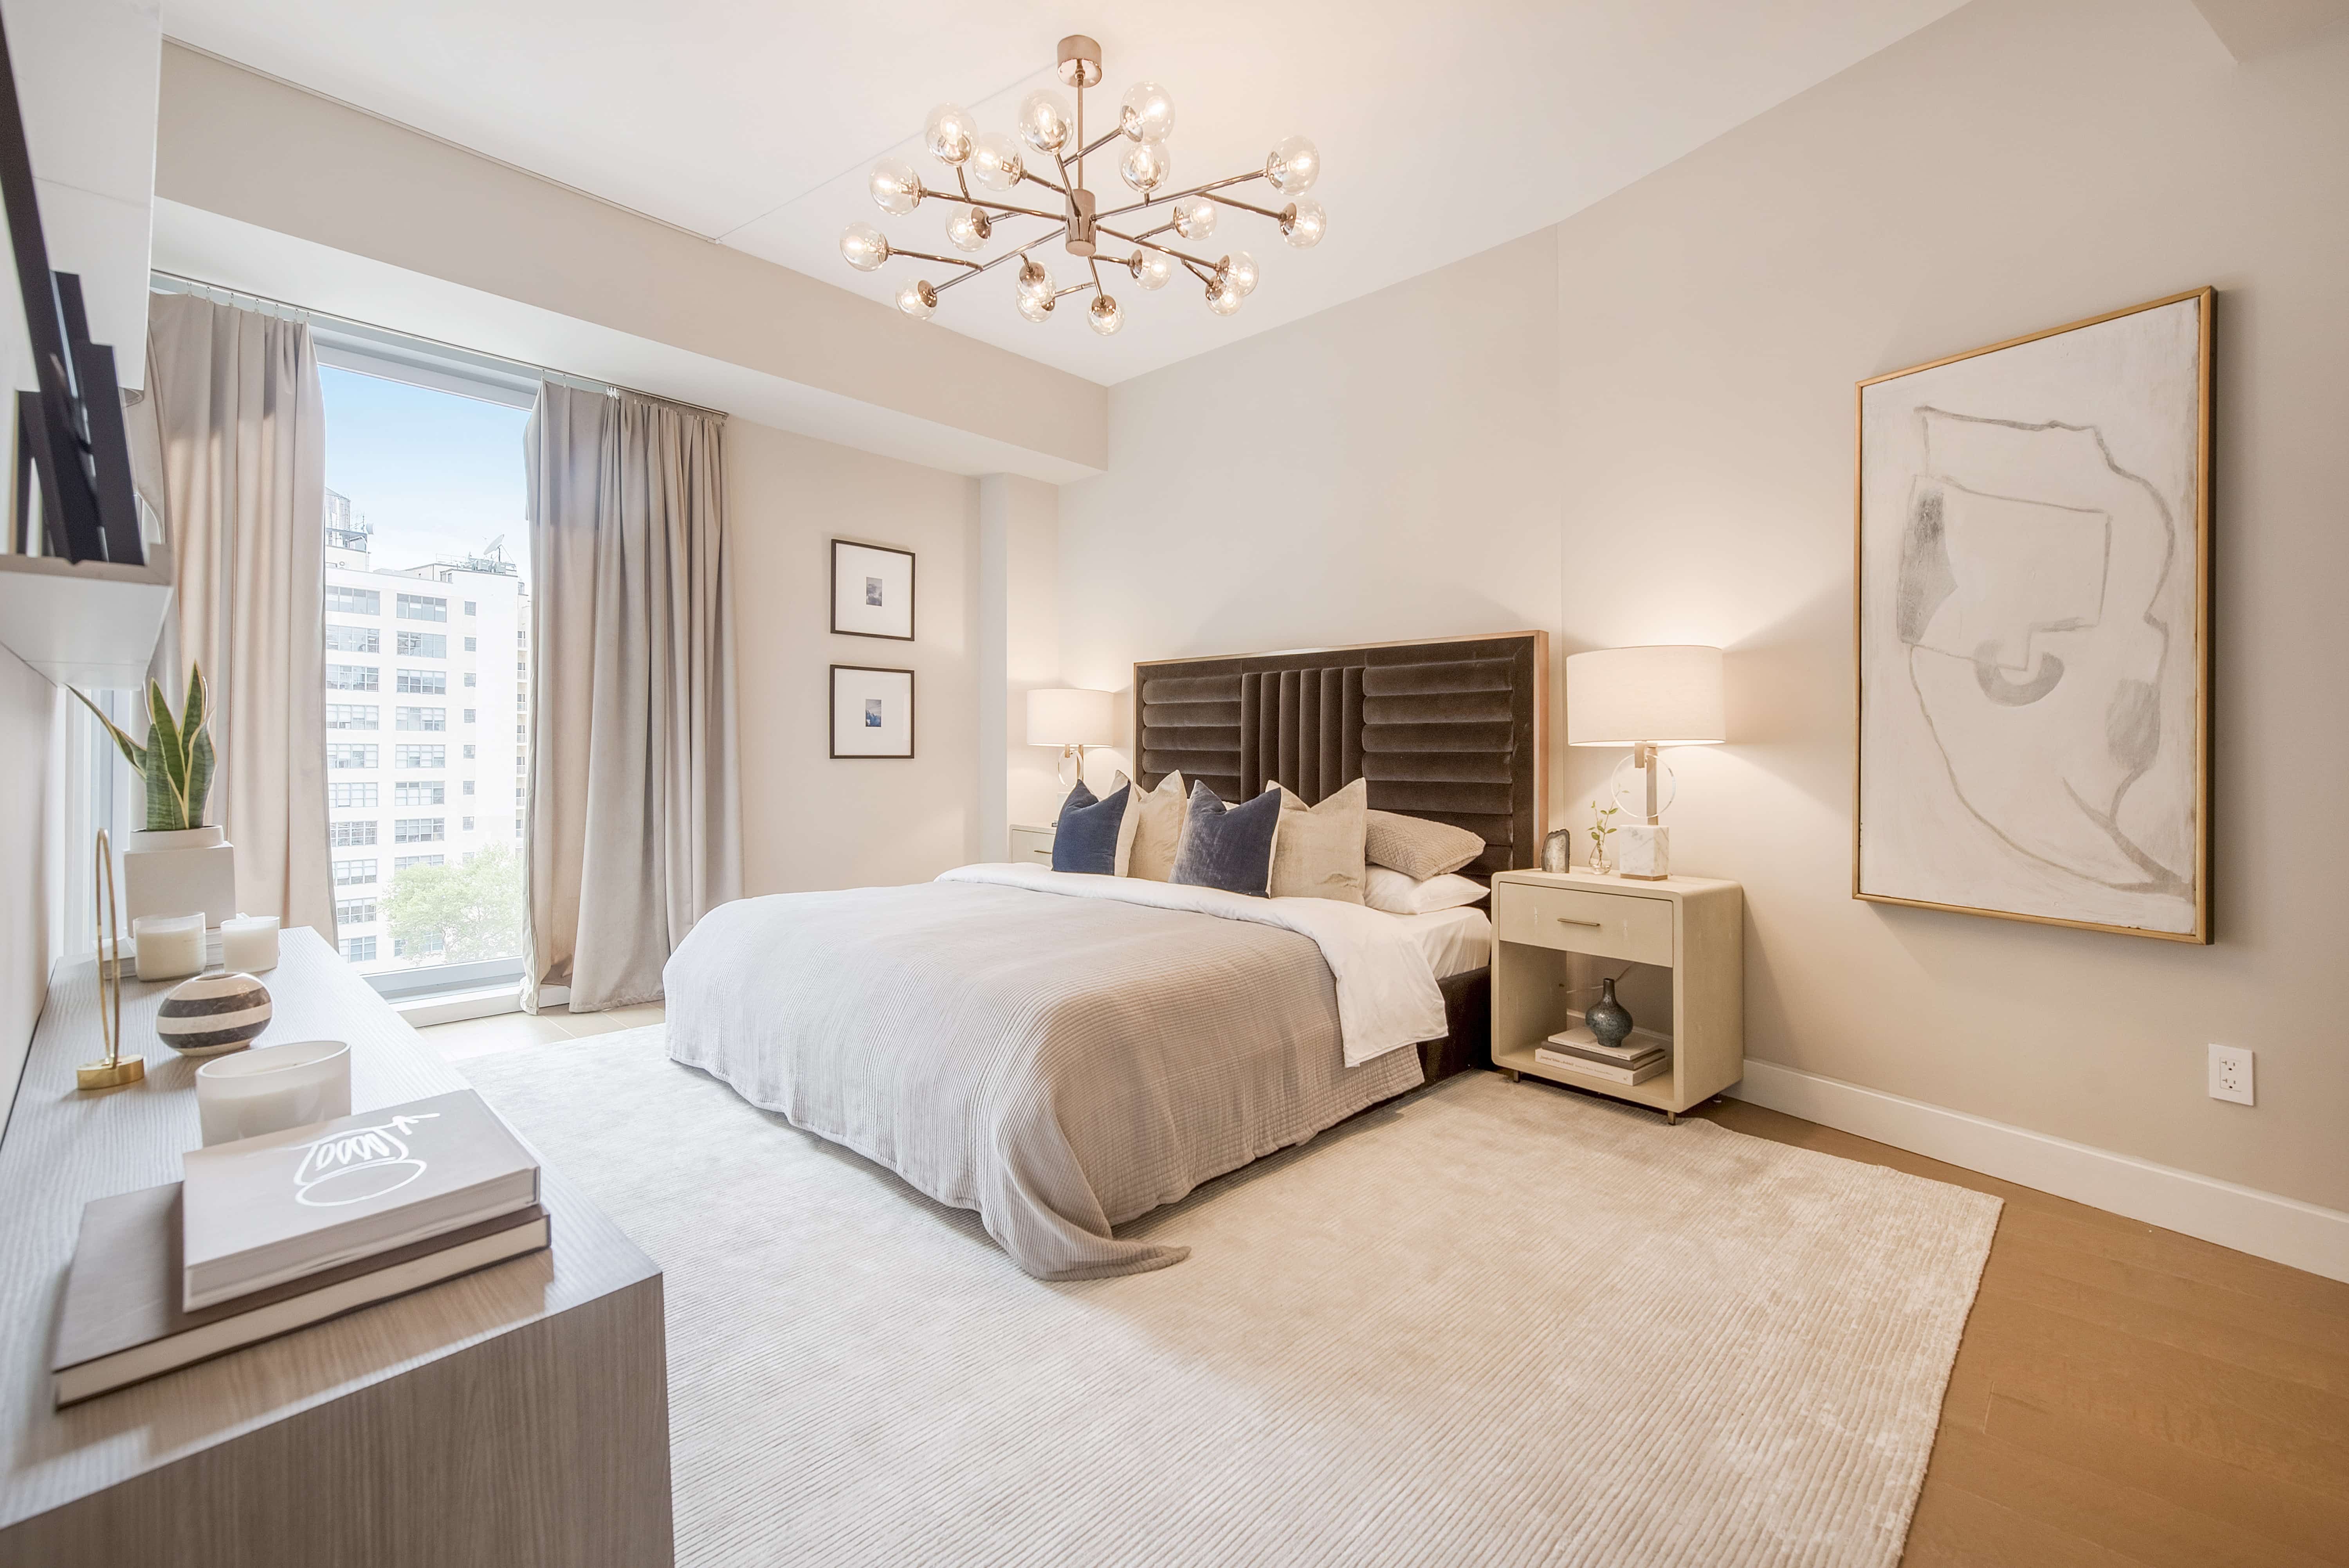 What is a Legal Bedroom in New York City? | ELIKA insider